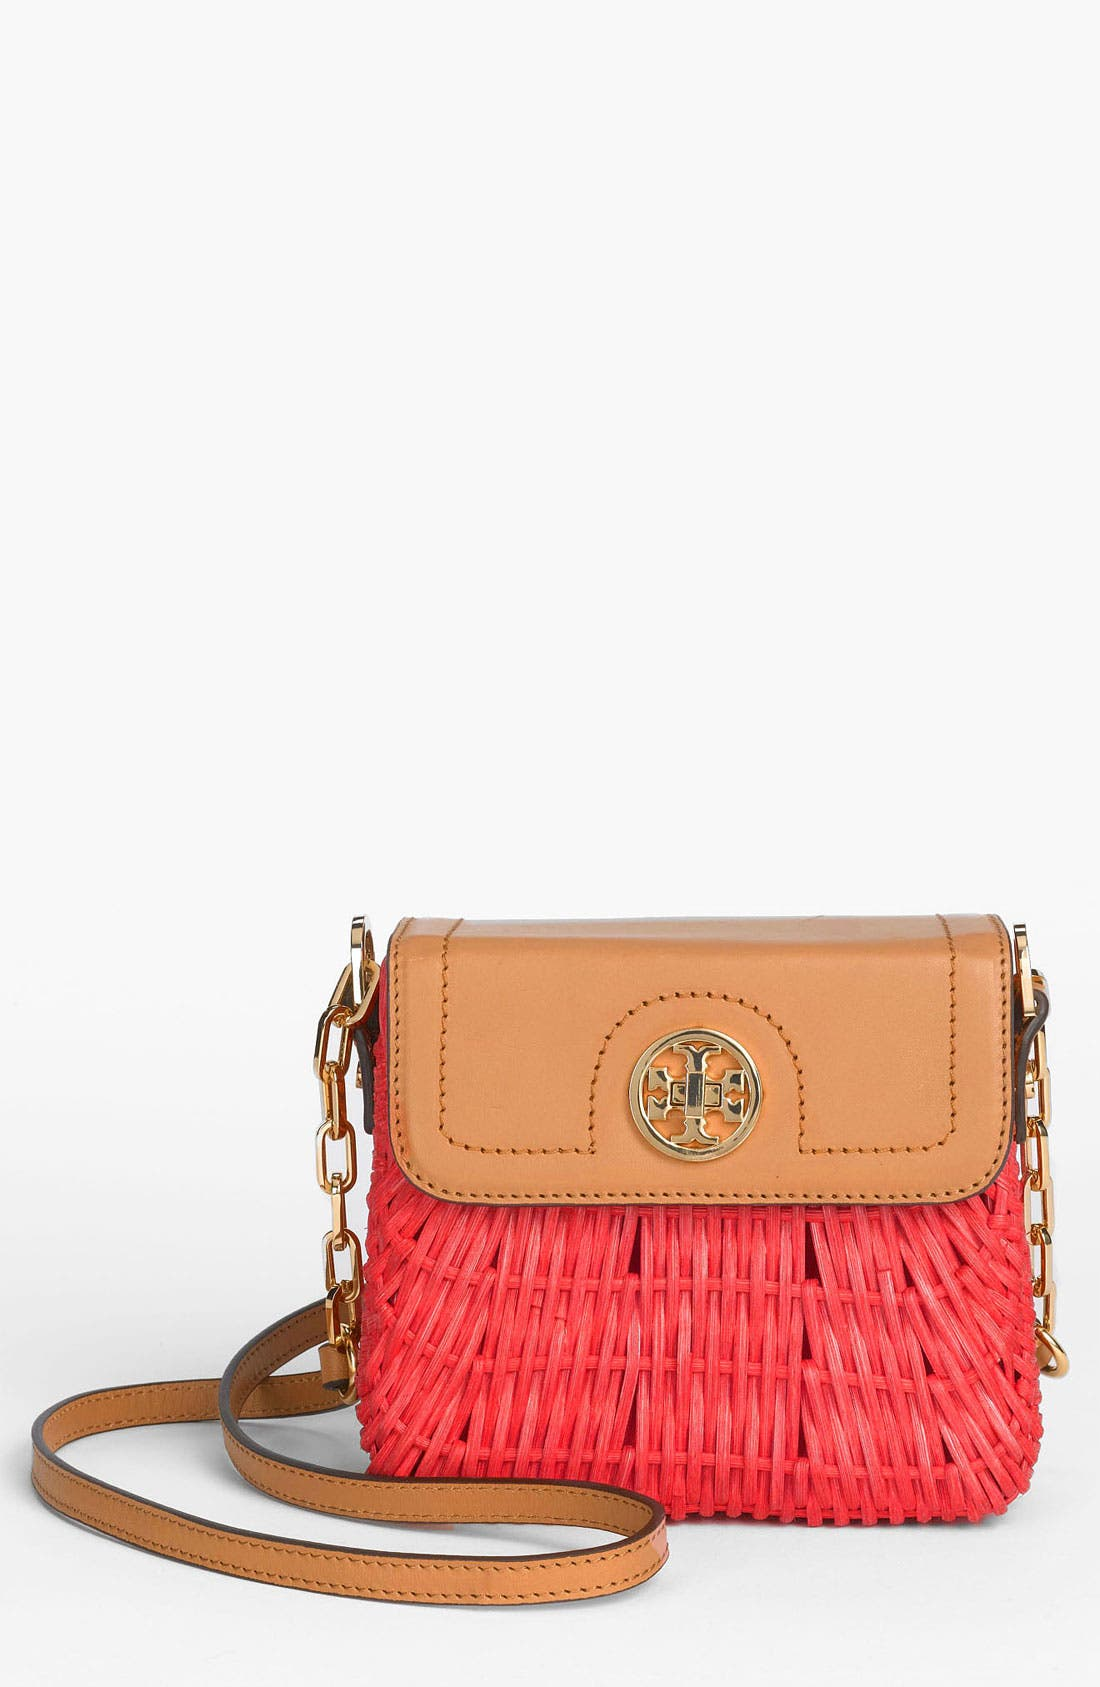 Alternate Image 1 Selected - Tory Burch 'Mini' Lacquered Rattan Crossbody Bag